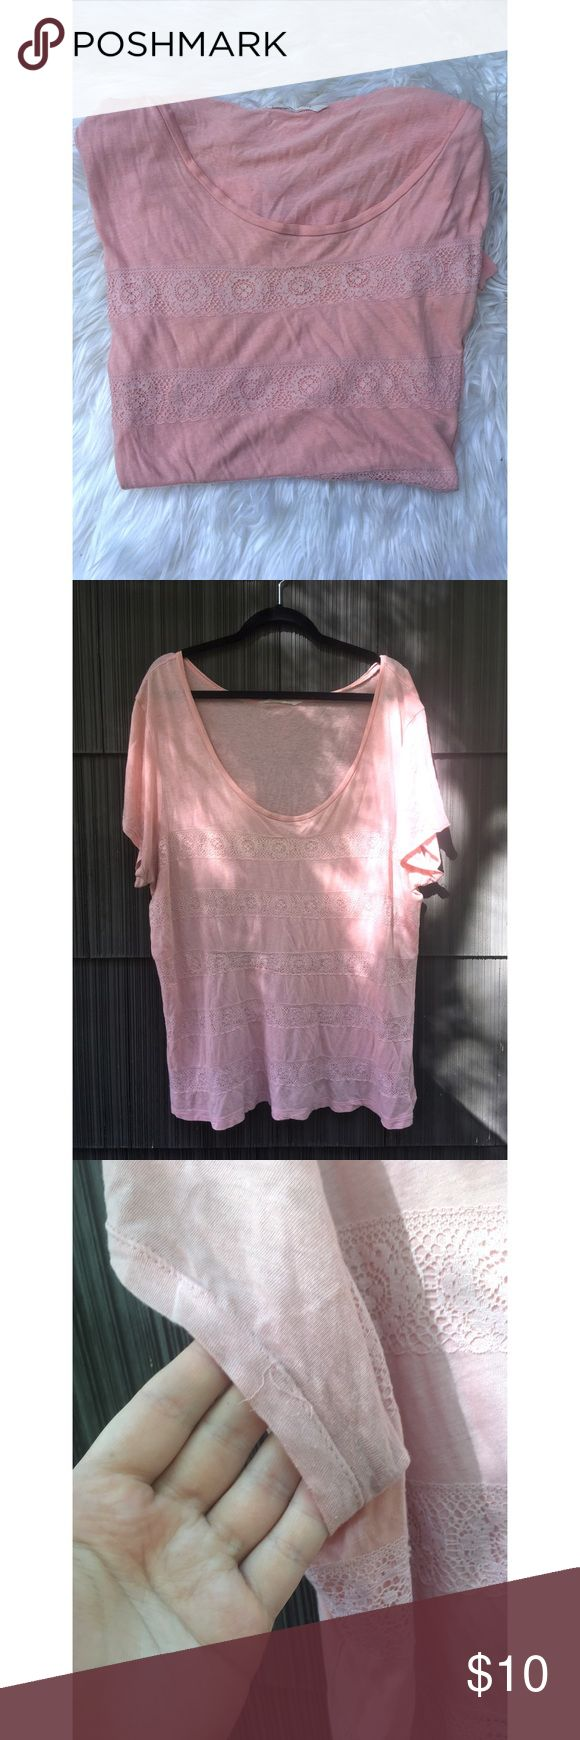 Old Navy Slouchy Top w/ Lace Details a light blush/pink color. worn but still in good condition. a few strings pulling on sleeve as shown in photo. loose and comfy. runs large, could fit a 3x in my opinion. Old Navy Tops Tees - Short Sleeve